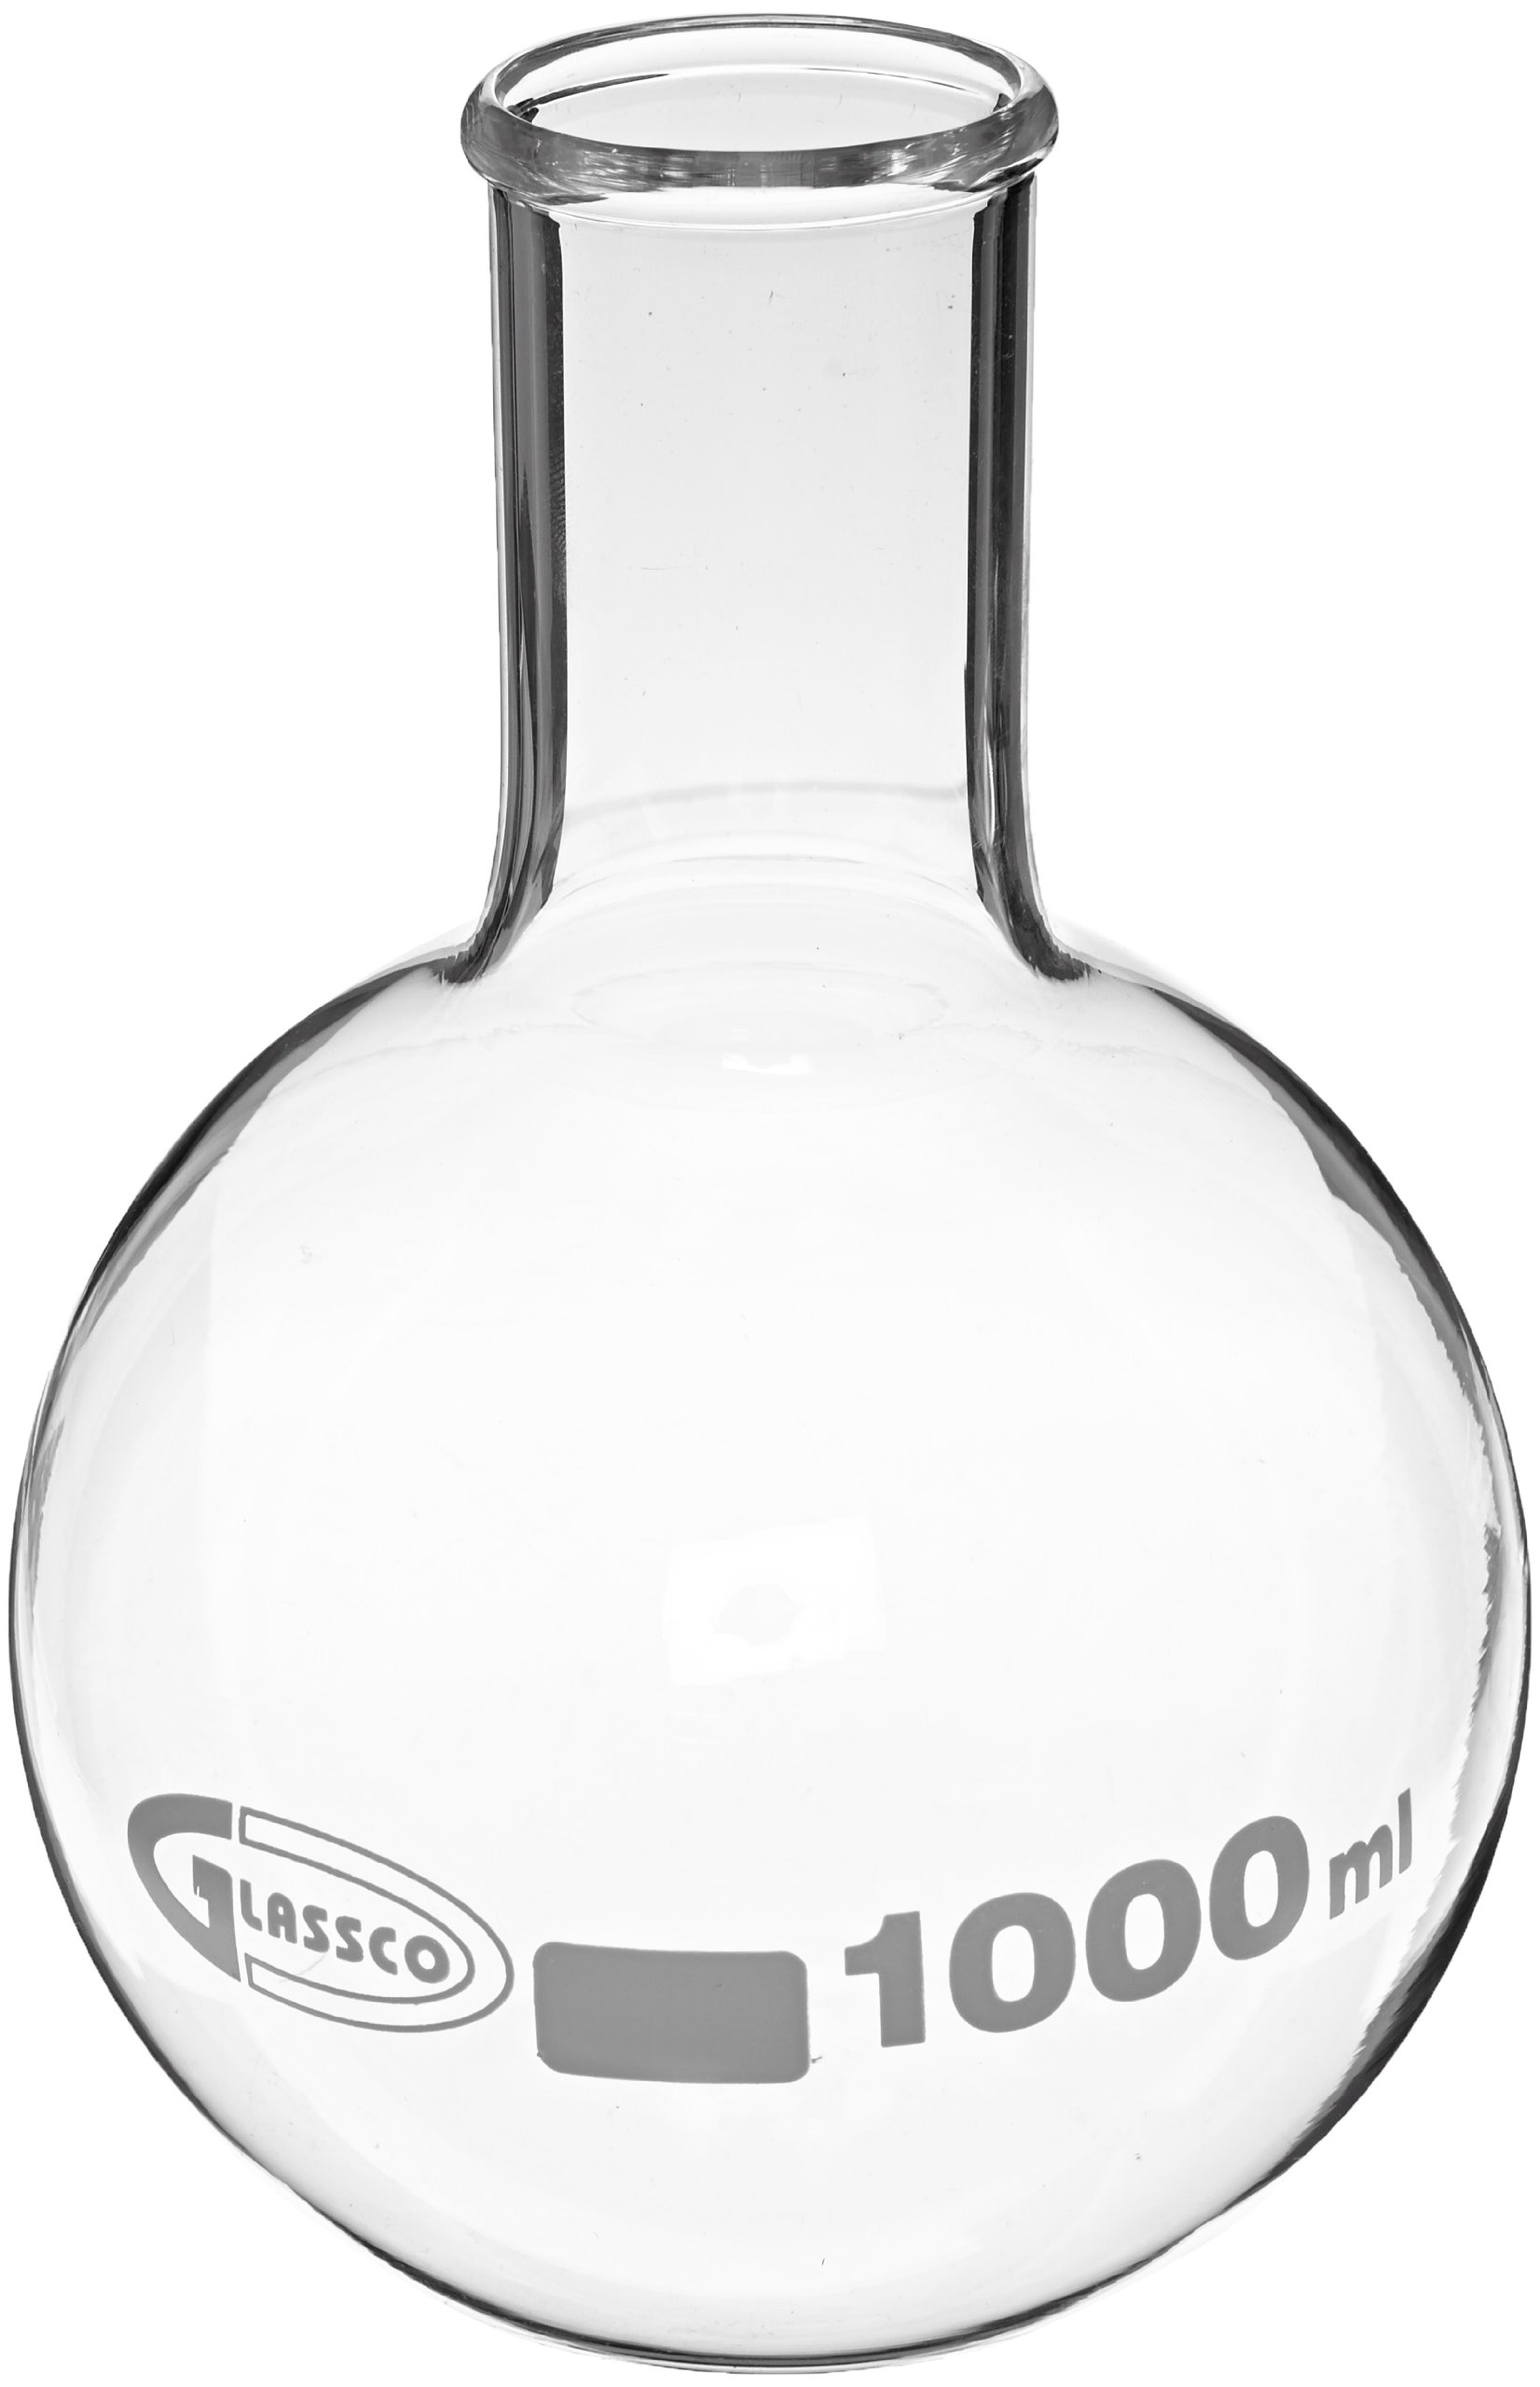 United Scientific FG4060-1000 Borosilicate Glass Flat Bottom Boiling Flask, 1000ml Capacity